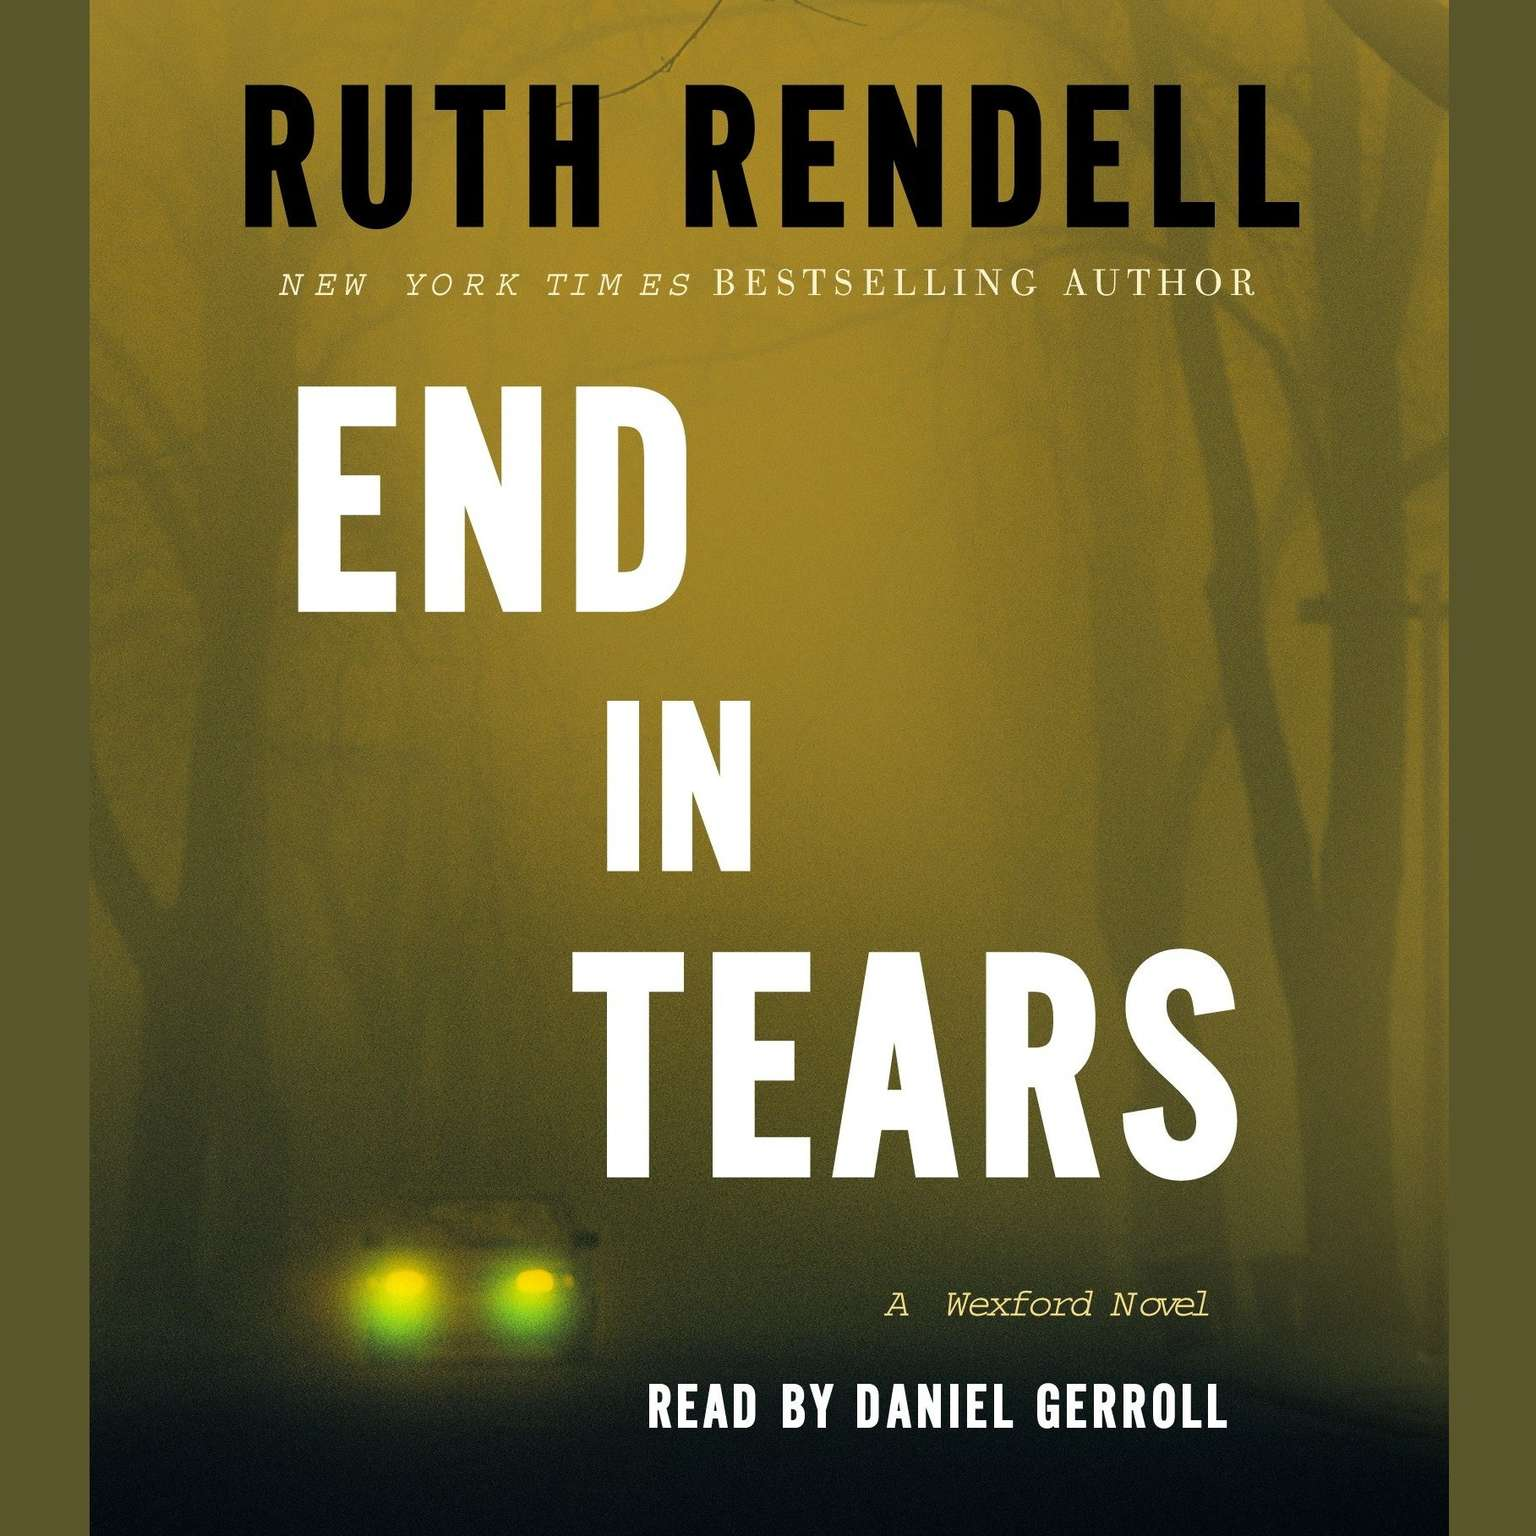 Printable End in Tears: A Wexford Novel Audiobook Cover Art